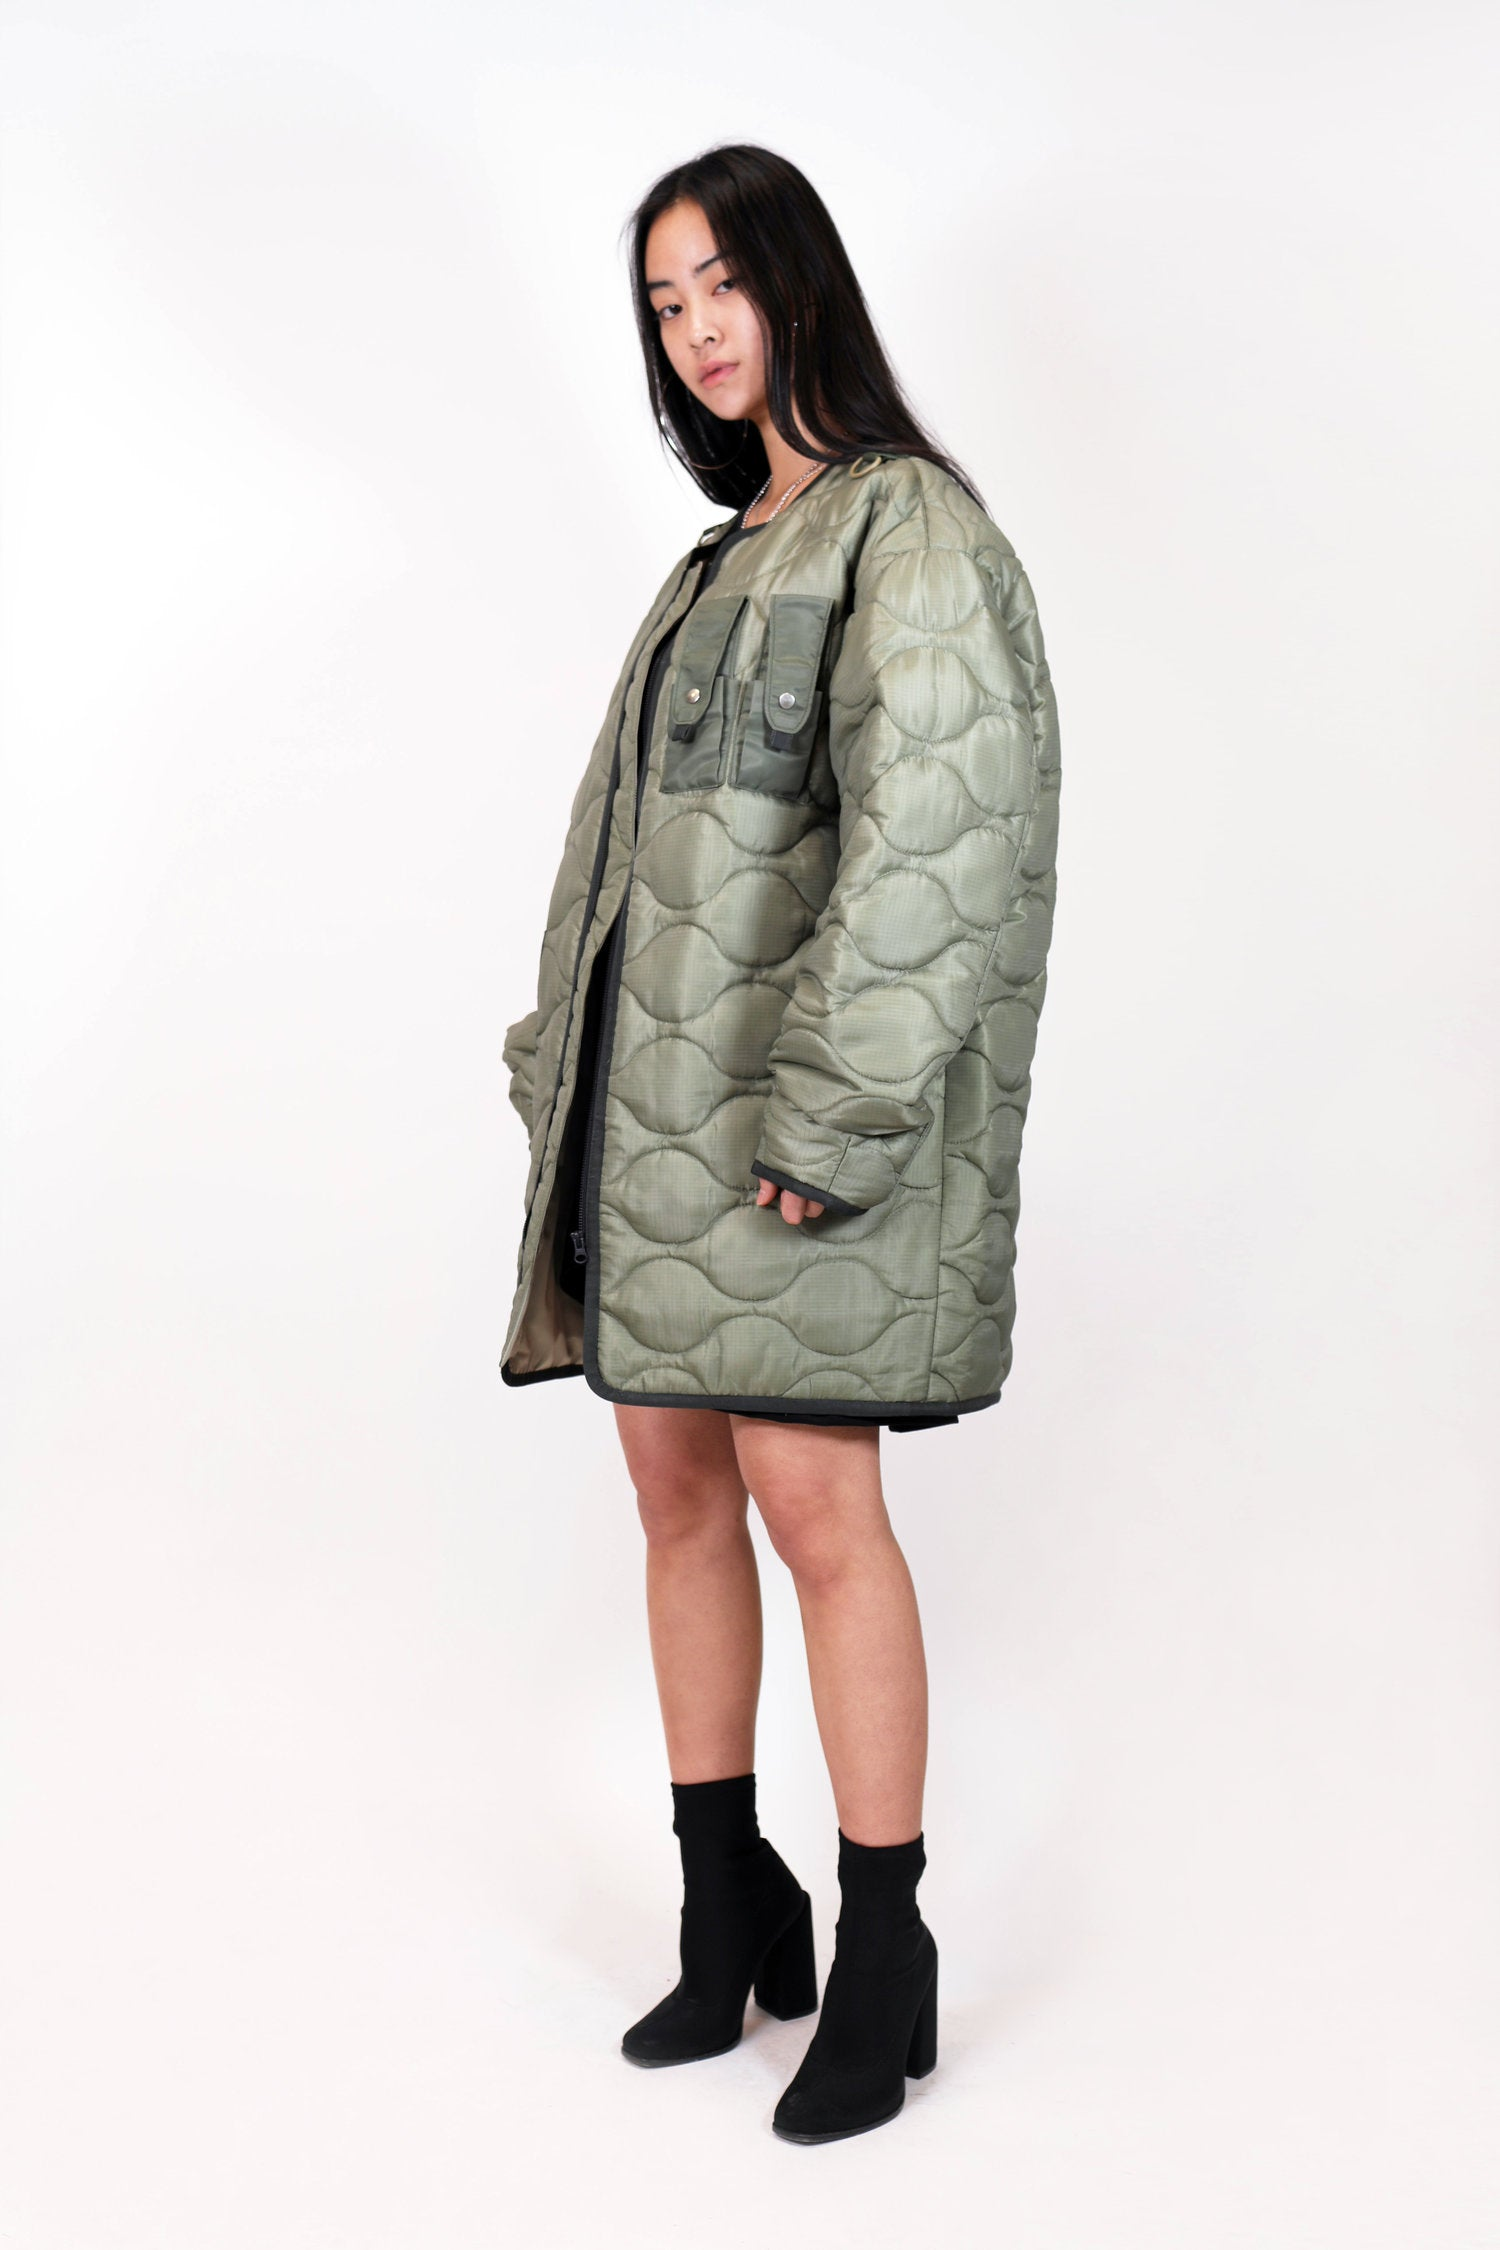 QUILTED BLOUSON OUTER hyein seo - NOLM - Clothes Online - nolmau.com - Sydney-Australia Online Shopping